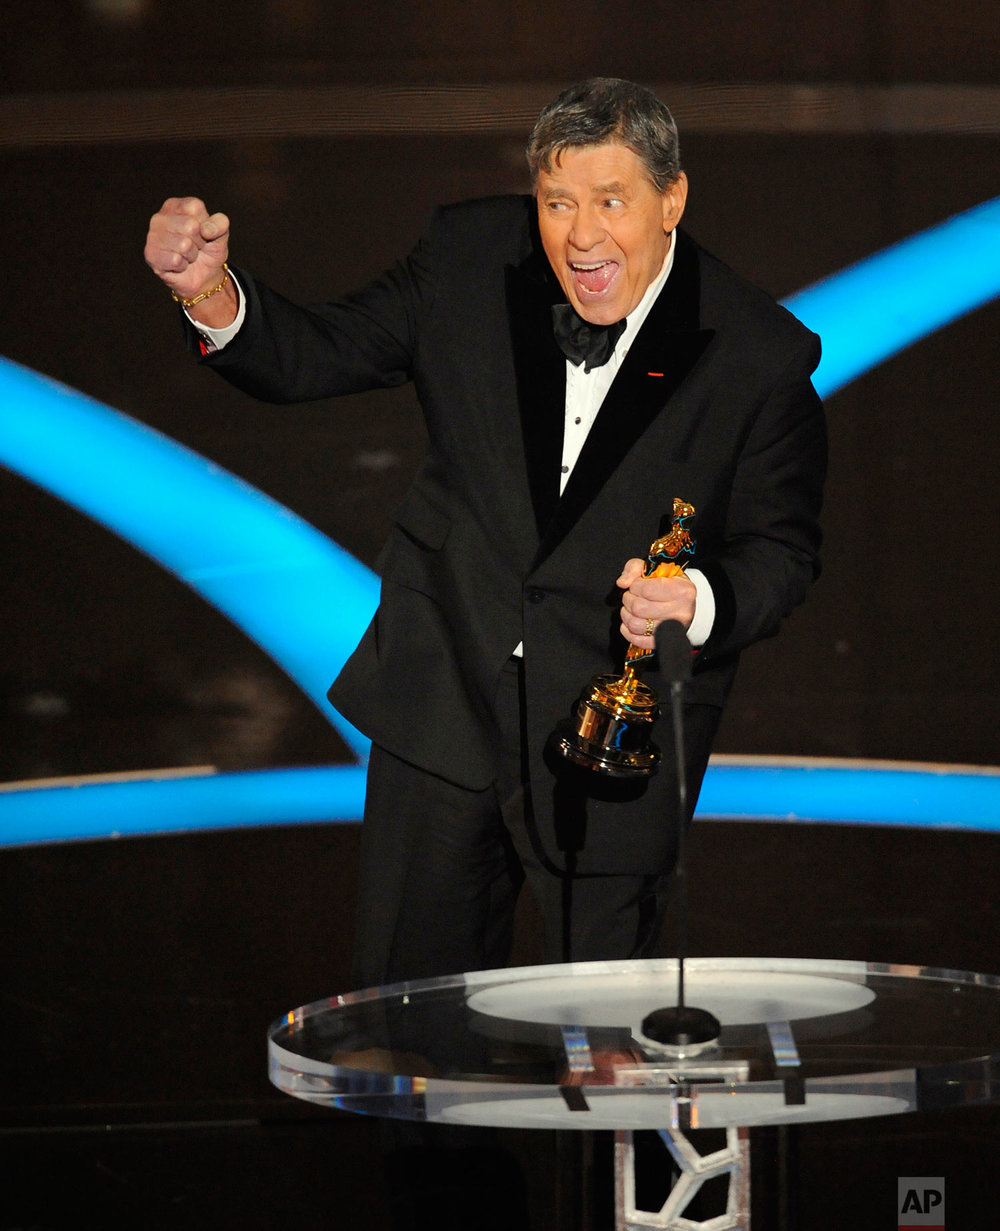 In this Sunday, Feb. 22, 2009 photo, Jerry Lewis accepts the Jean Hersholt Humanitarian Award by the Board of Governors of the Academy of Motion Picture Arts and Sciences during the Oscars telecast during the 81st Academy Awards, in the Hollywood section of Los Angeles. (AP Photo/Mark J. Terrill)